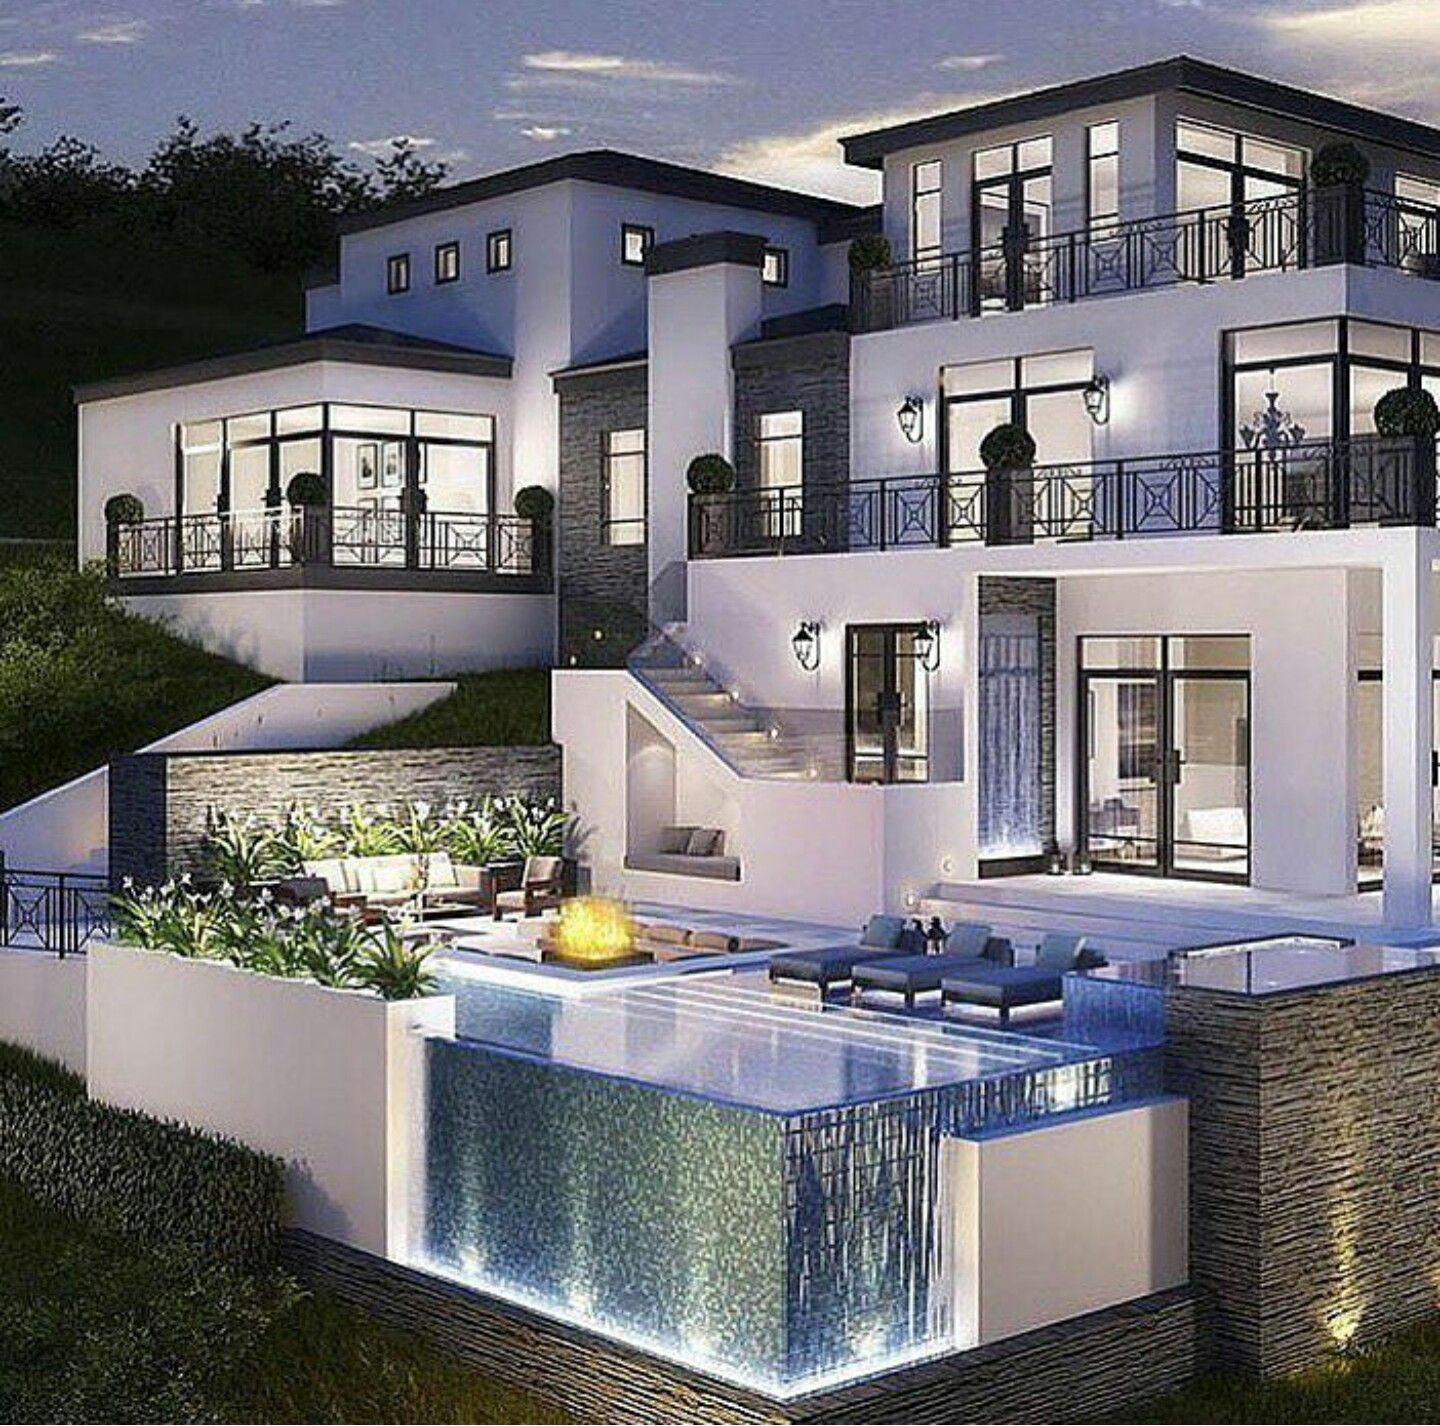 Luxury Home Design: Amazing Los Angeles Hollywood Hills Mansion With Infinity